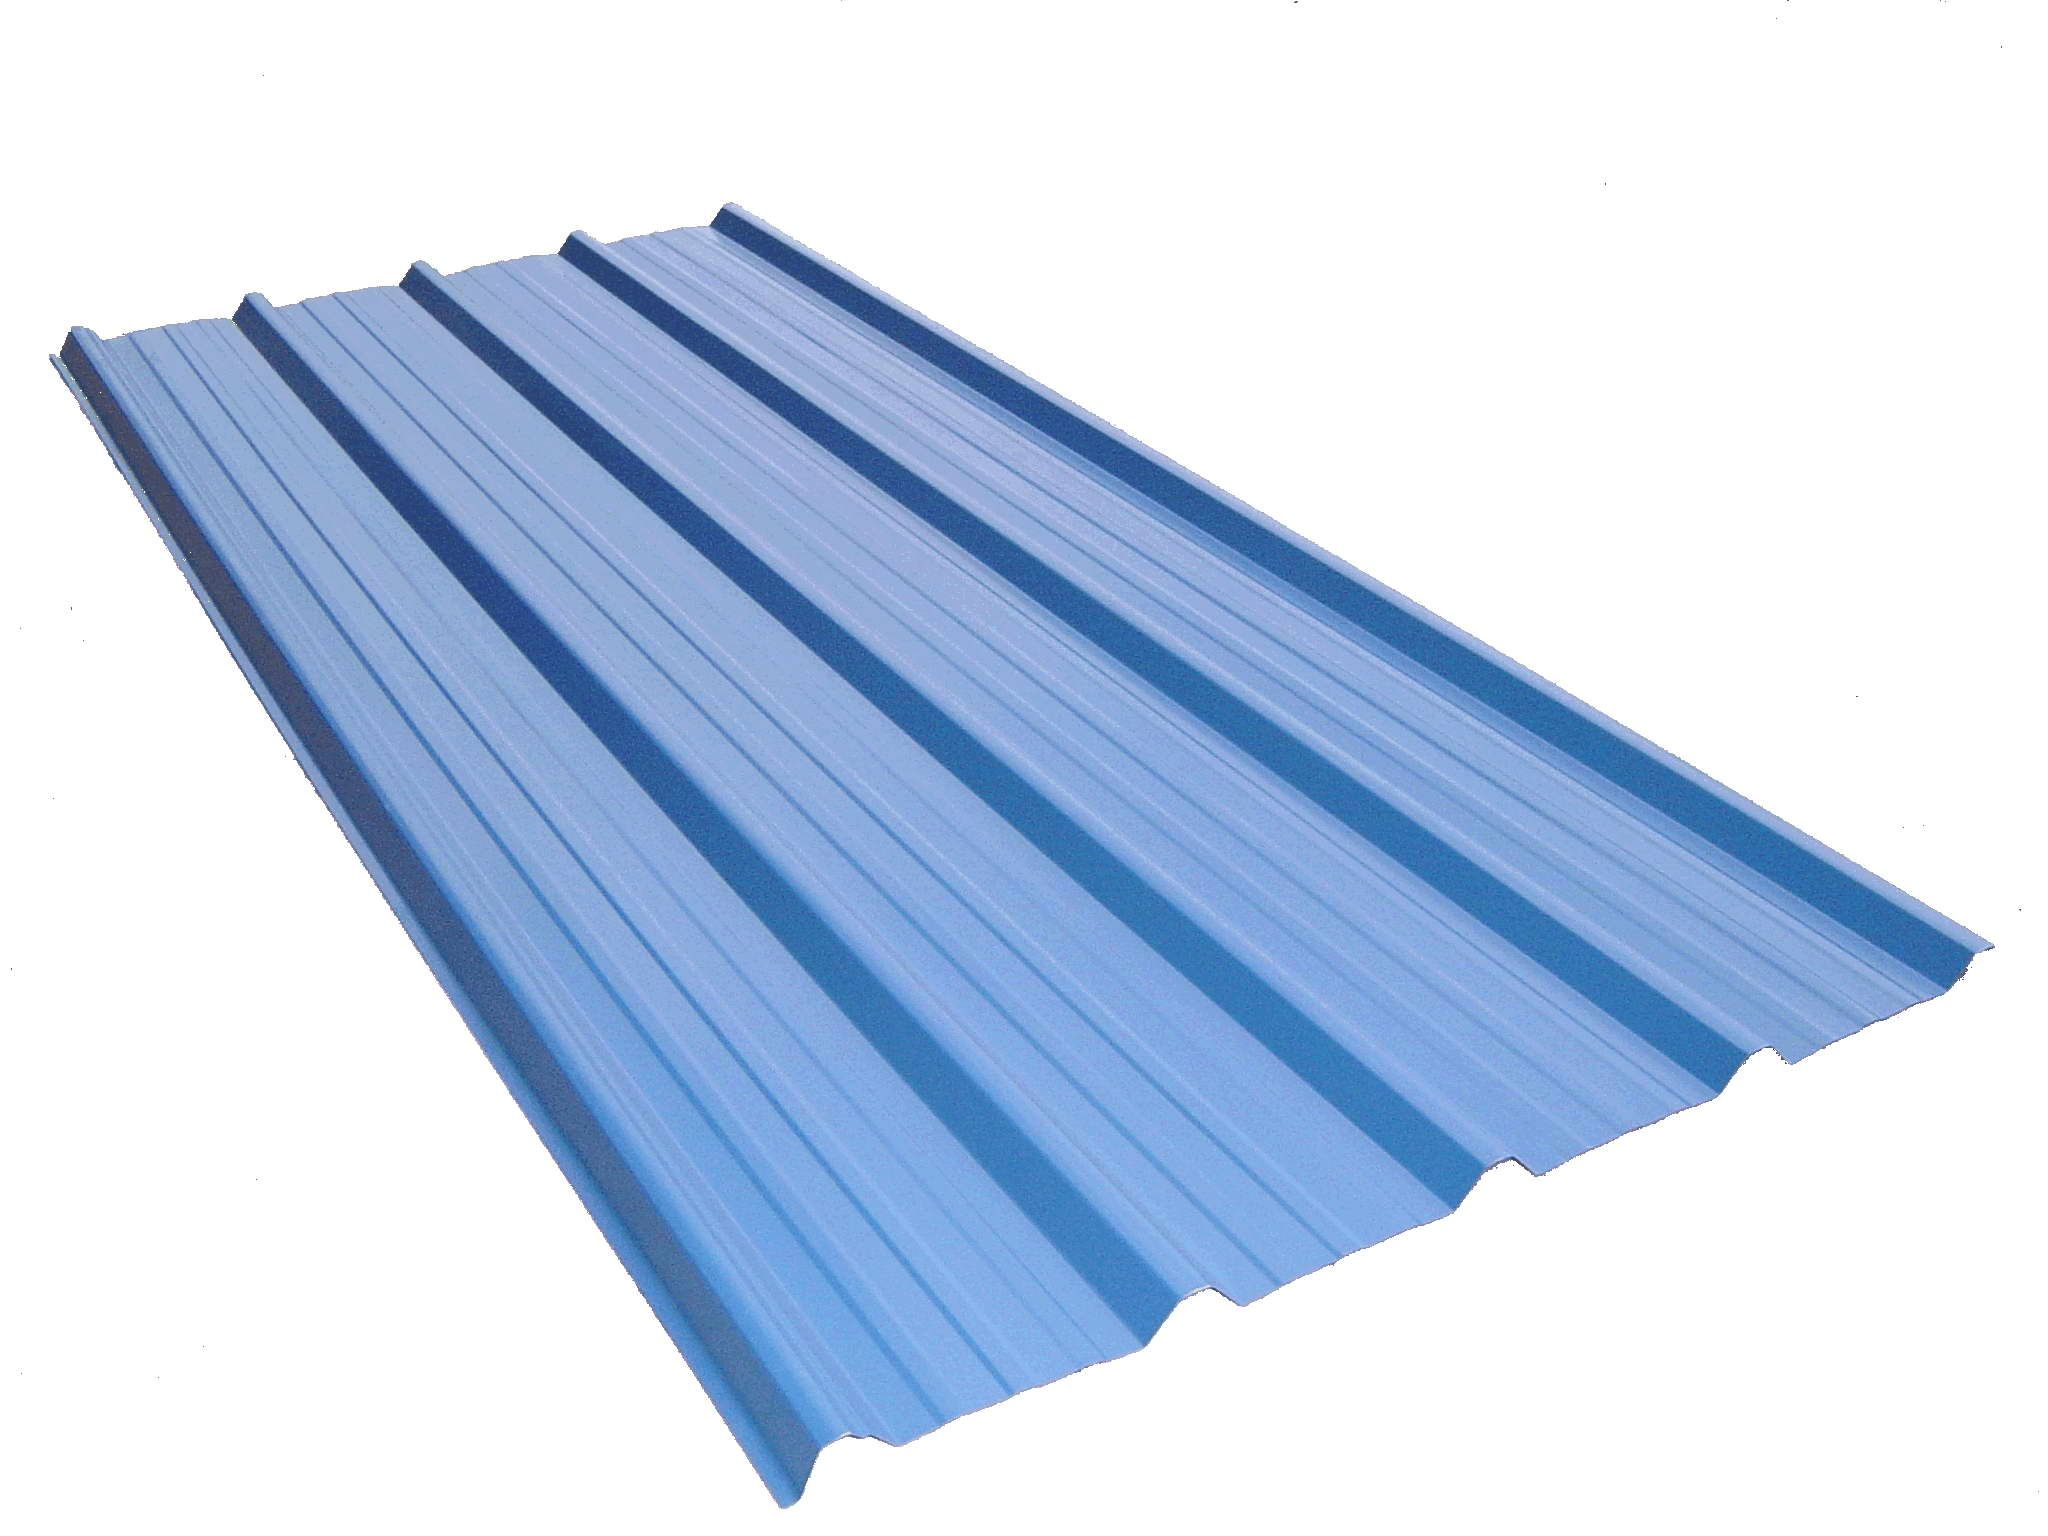 Colour Coated Metal Roofing - Buy Metal Roofing Product on Alibaba.com  sc 1 st  Pinterest & 29 best Metal Roofing images on Pinterest | Metal roof Roofing ... memphite.com